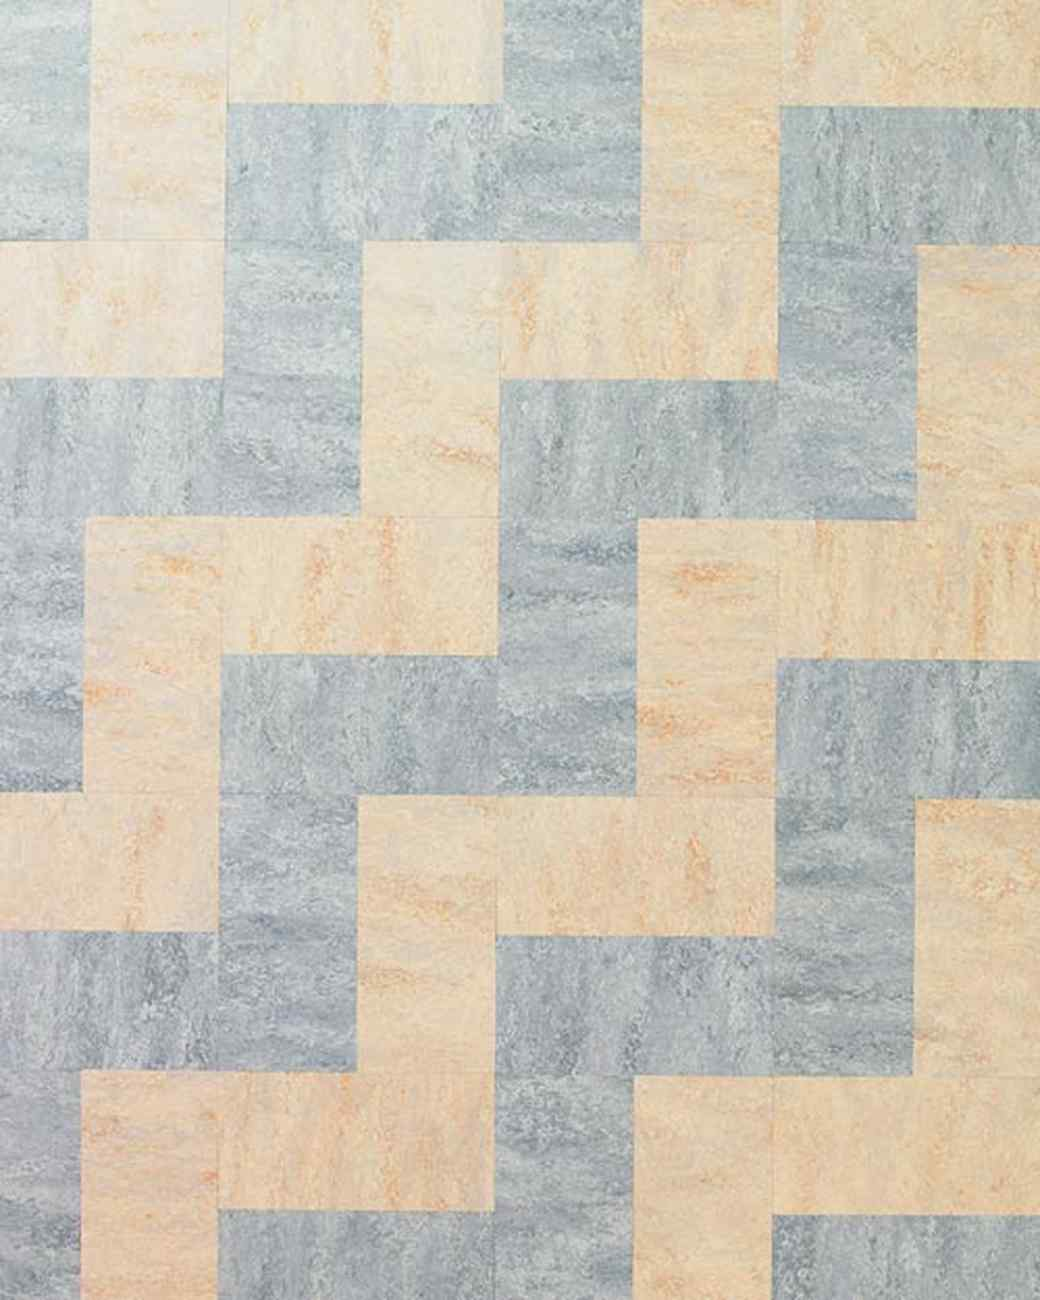 Diy flooring patterns martha stewart the pattern zigzag ppazfo